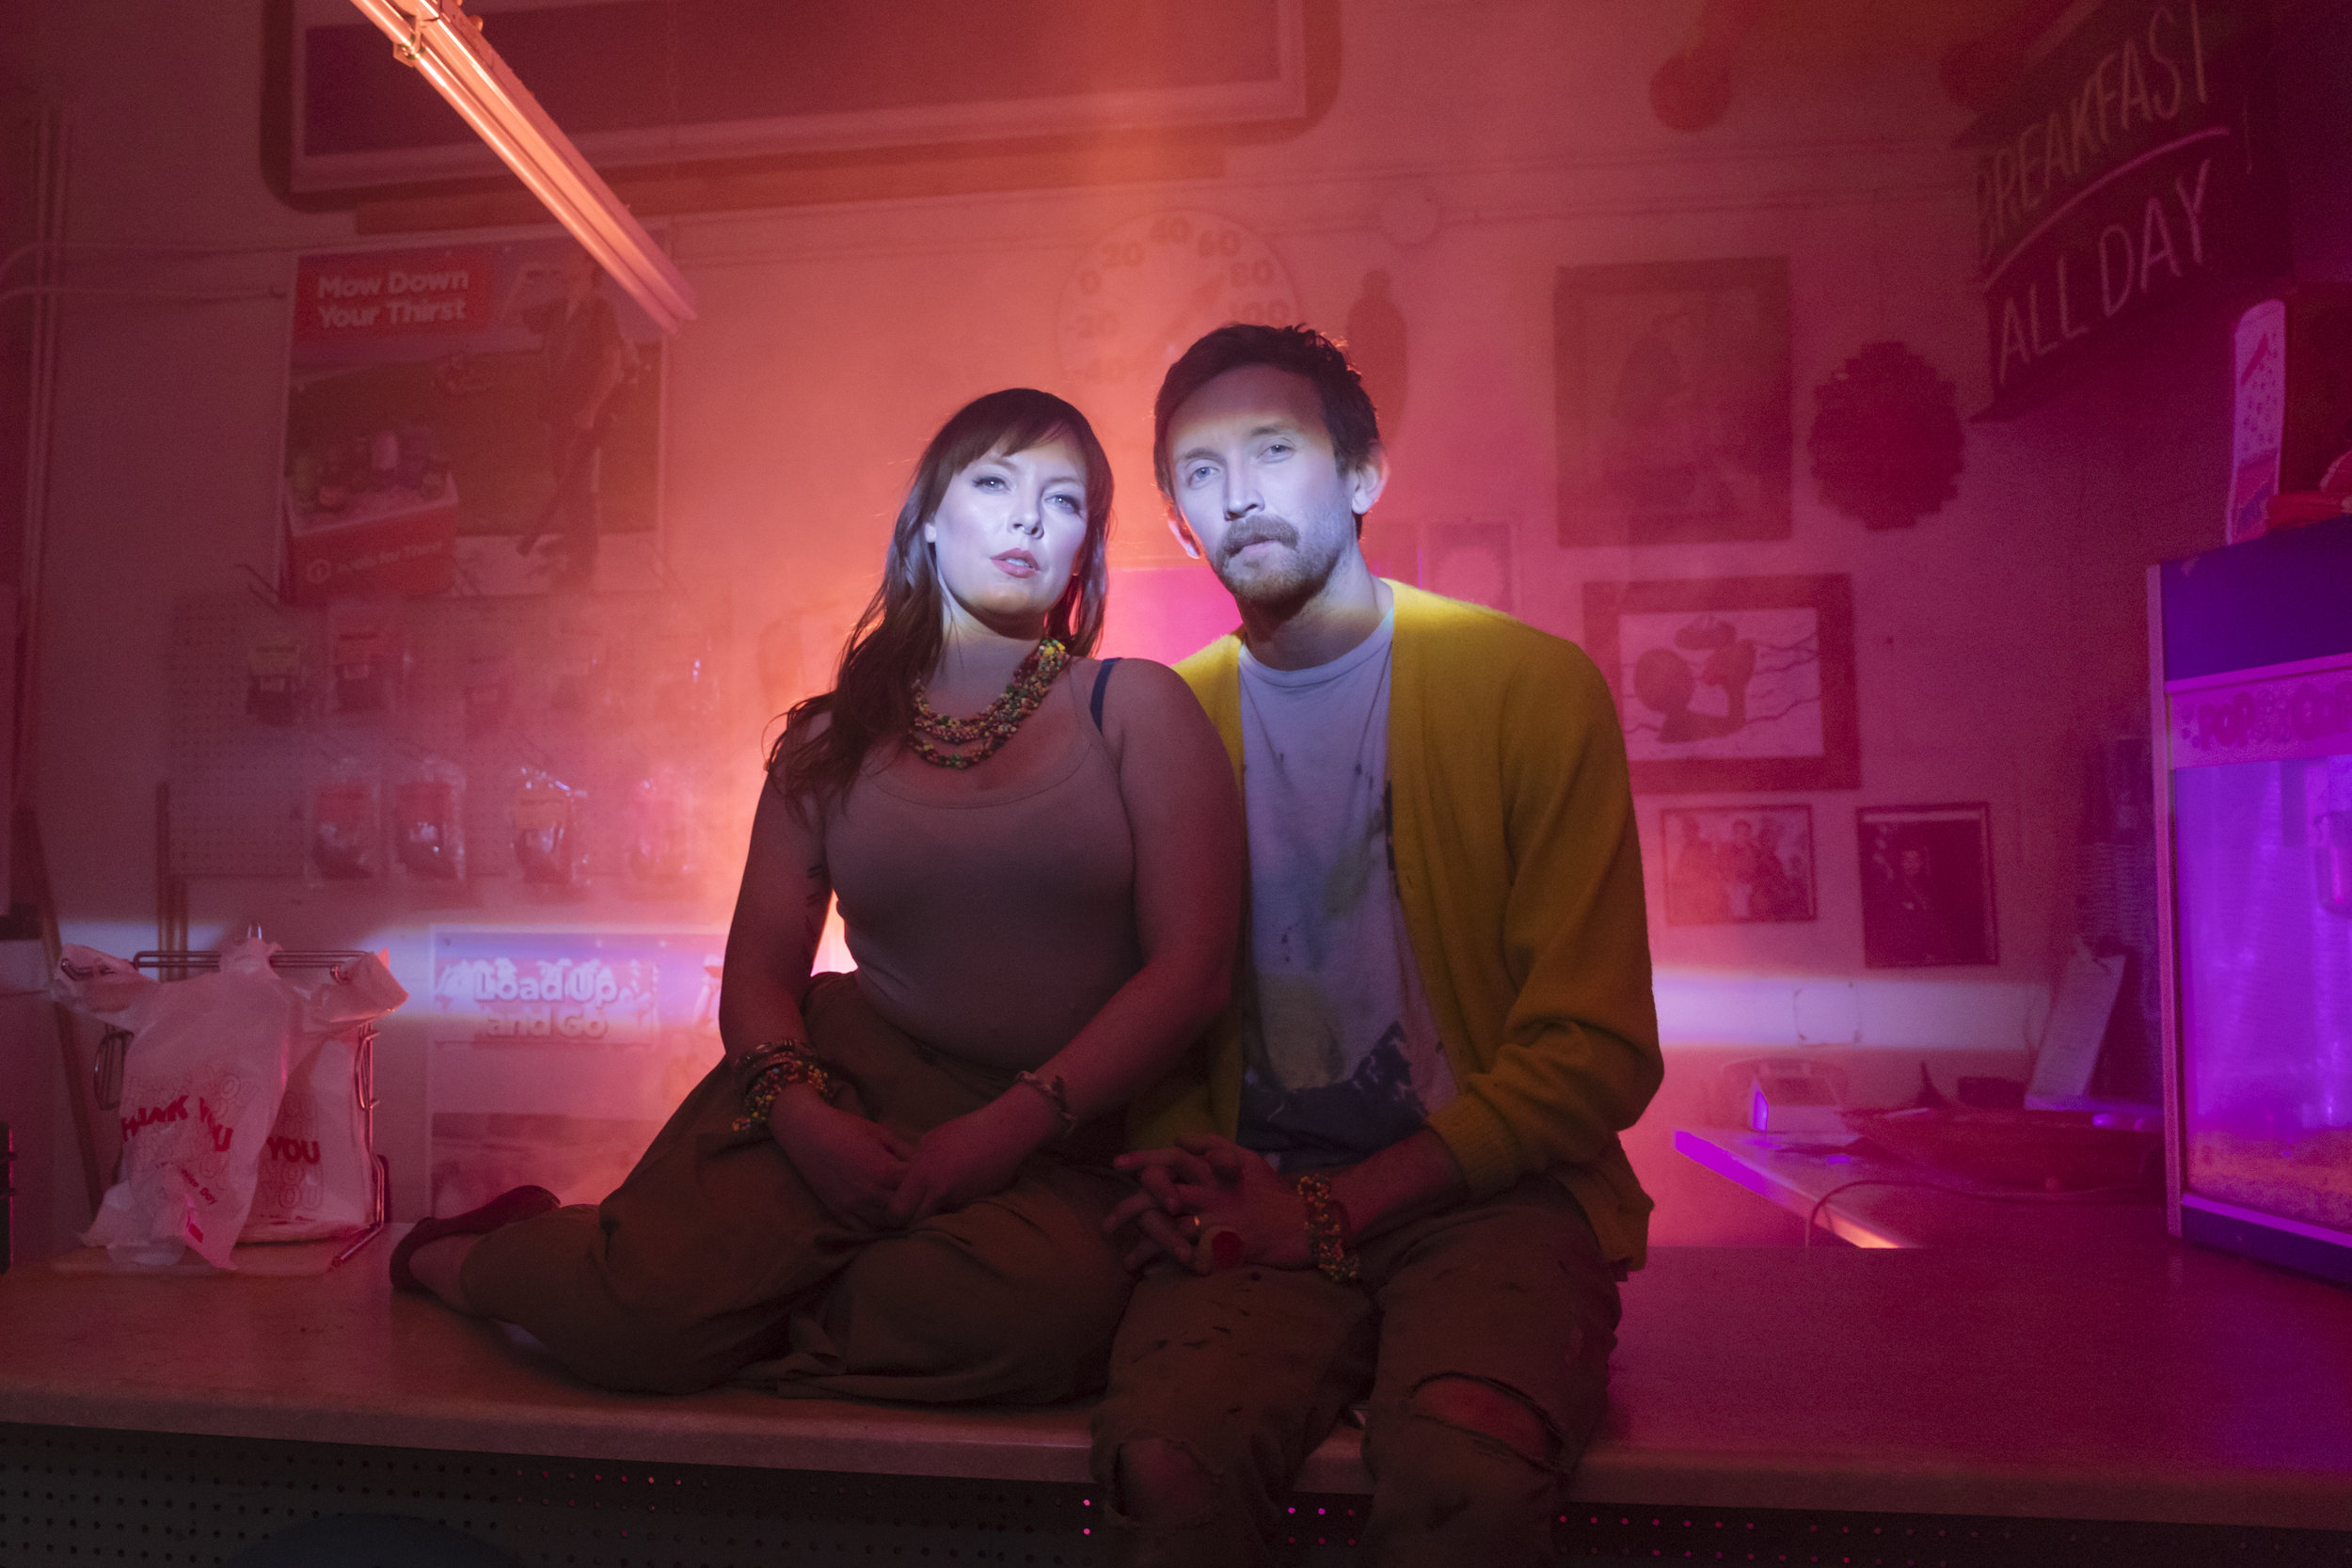 Portrait of sylvan esso by Lindsey Kennedy and Meow Wolf